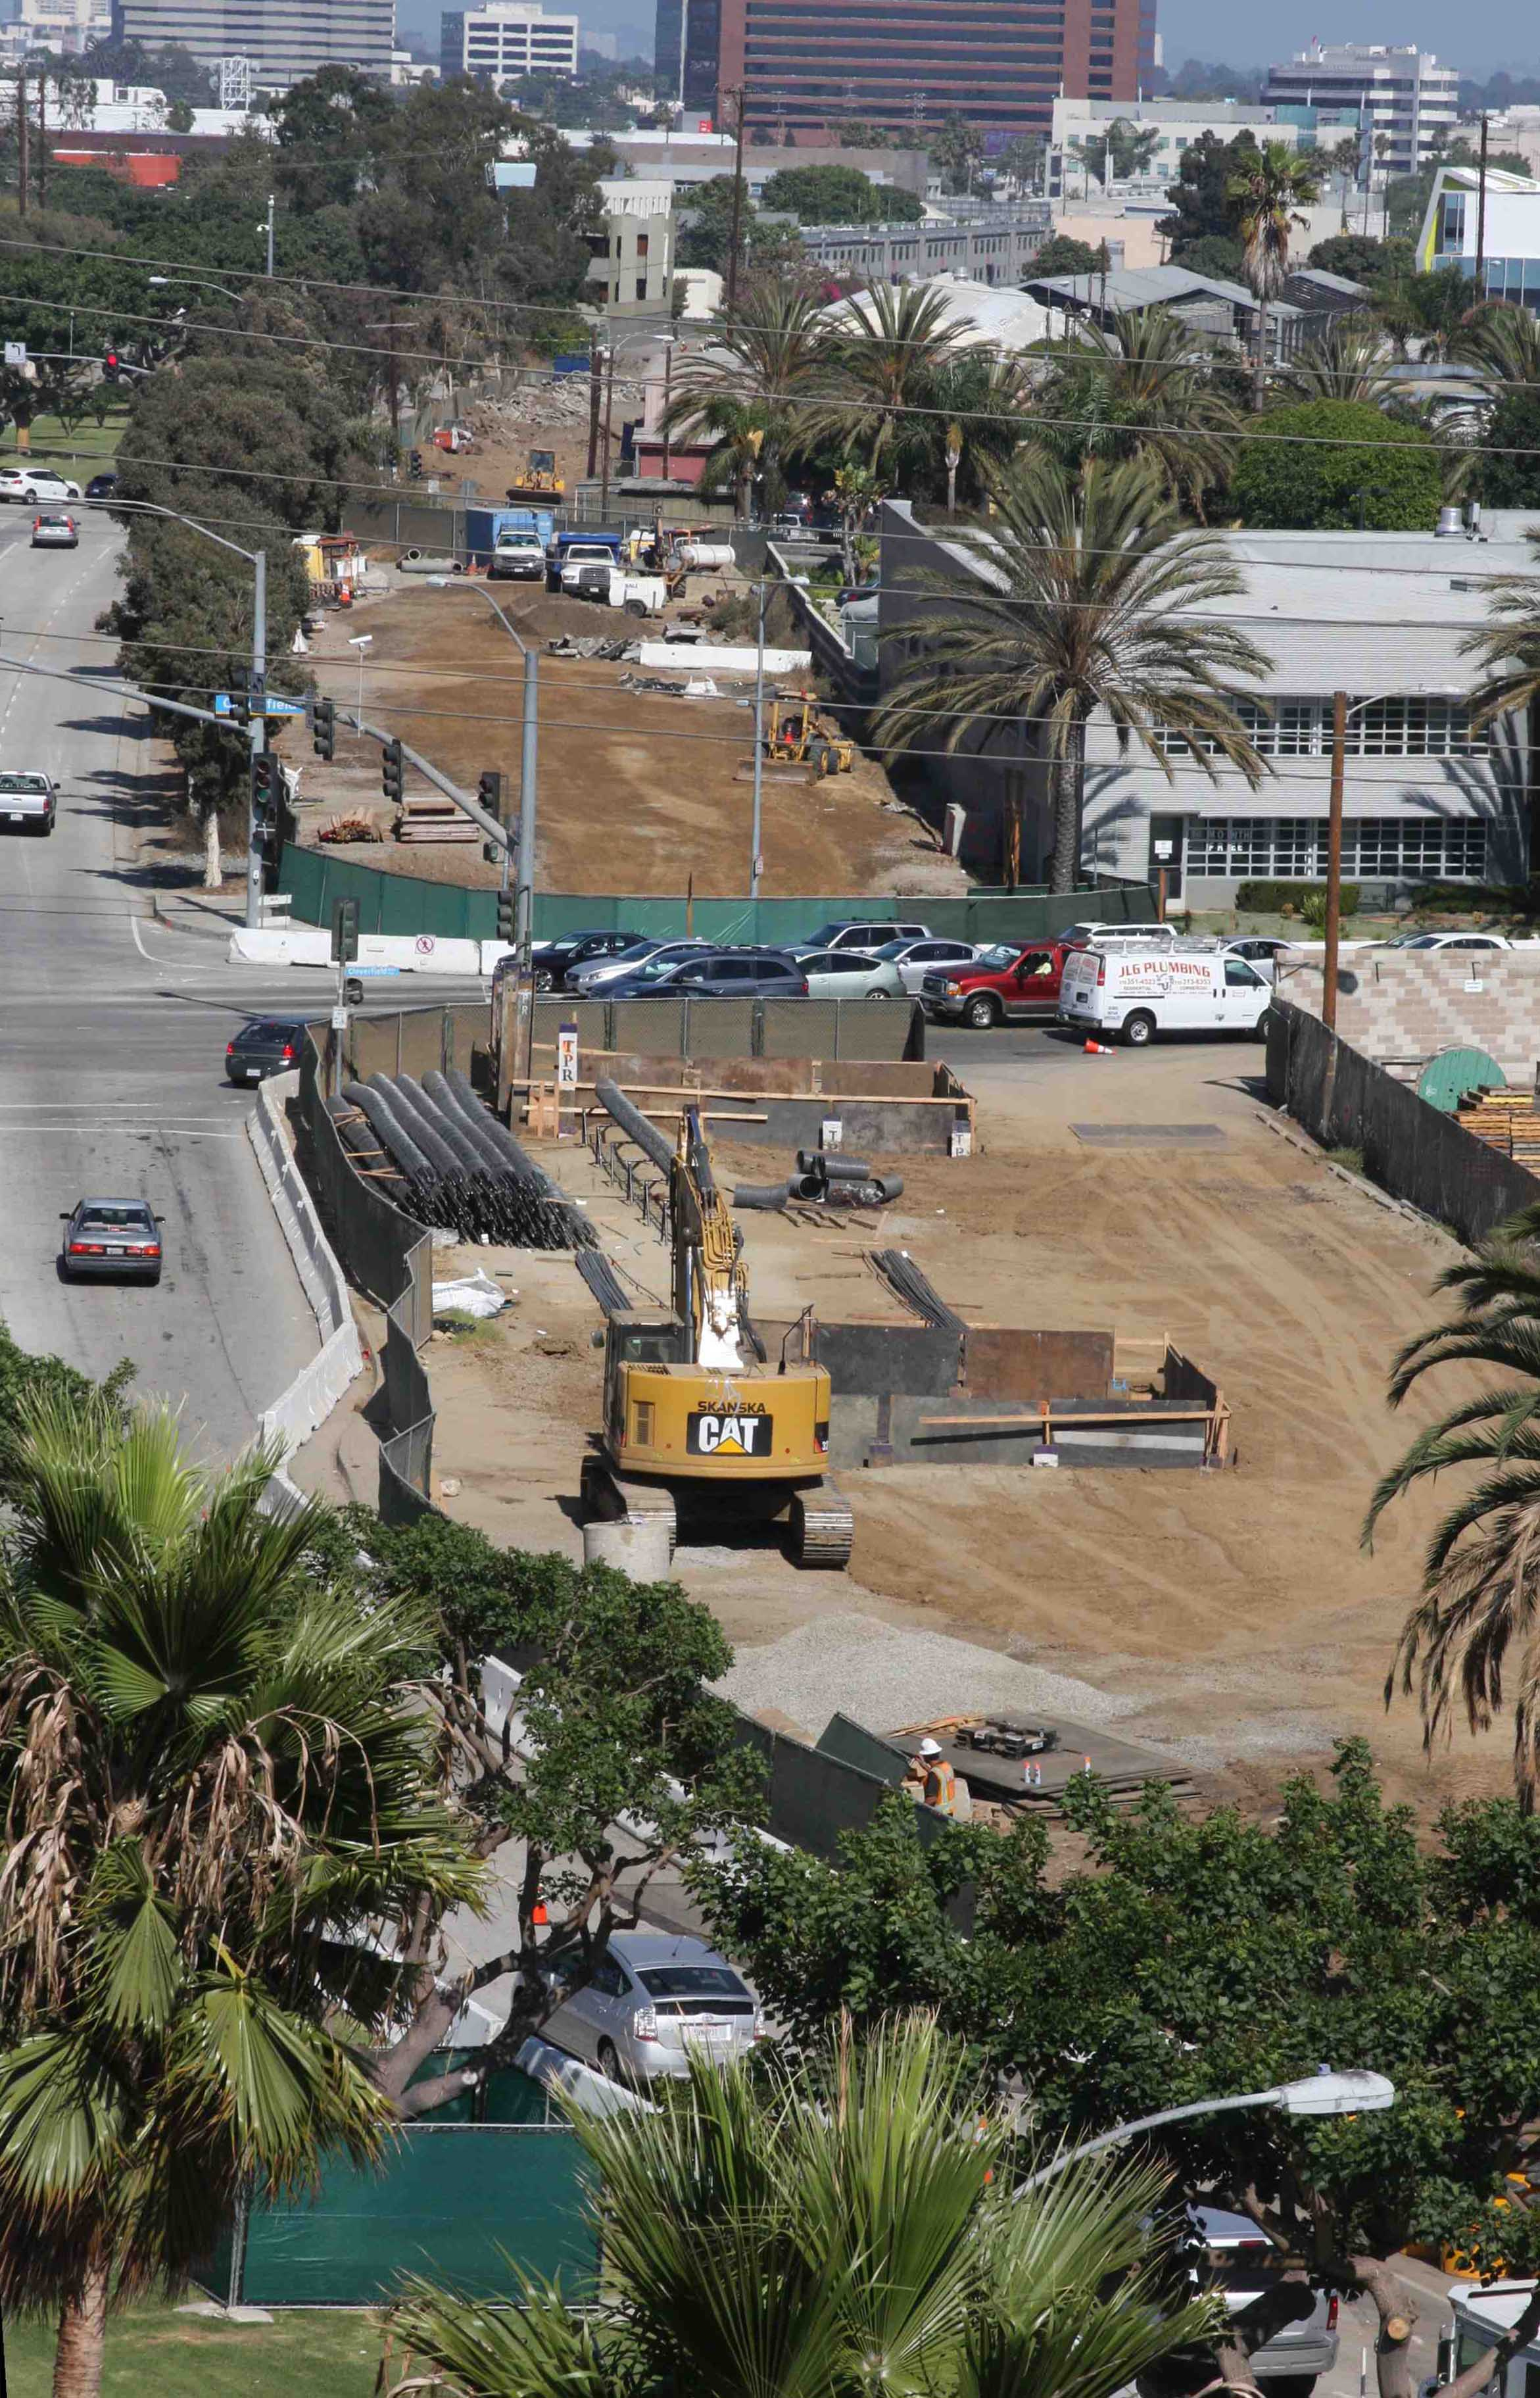 Work on the Measure R-funded Expo Line Phase 2 along Olympic Boulevard in Santa Monica. Photo by Expo Line Fan.